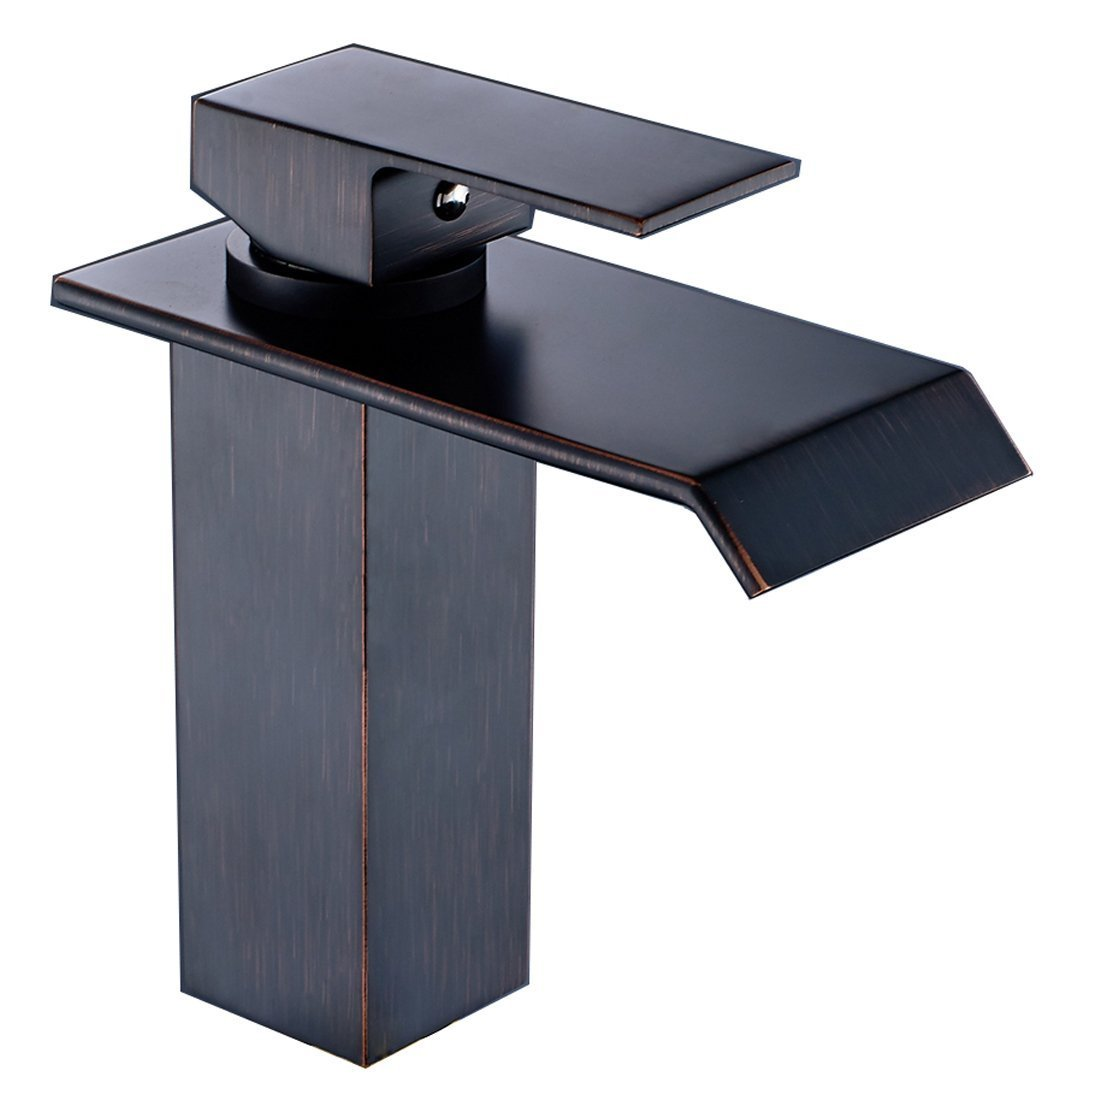 Yodel Single Handle Waterfall Bathroom Vanity Sink Faucet (Oil Rubbed Bronze)